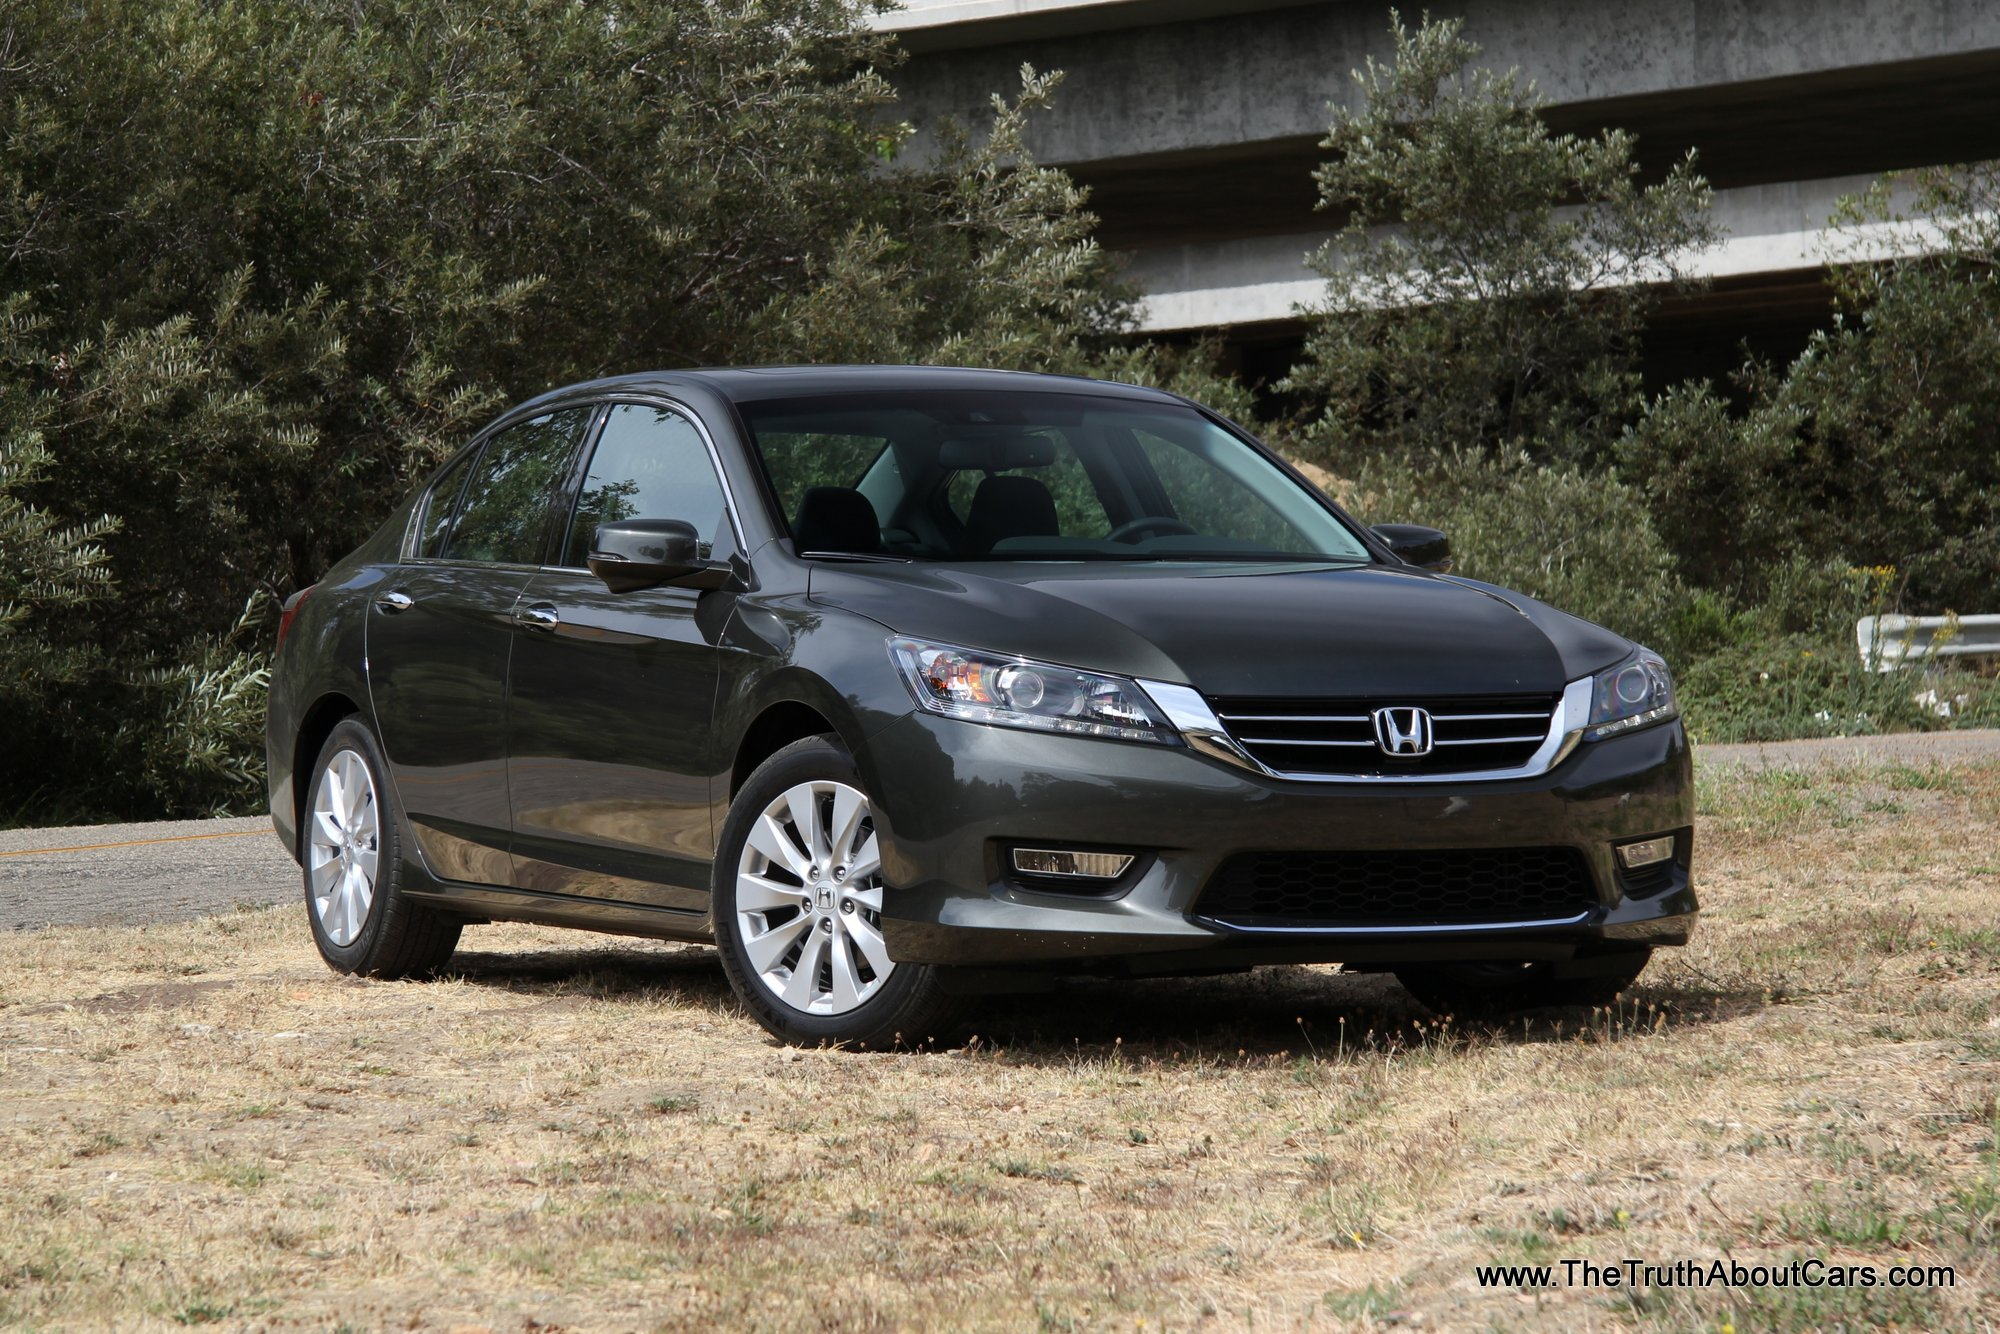 Honda Accord photo 05